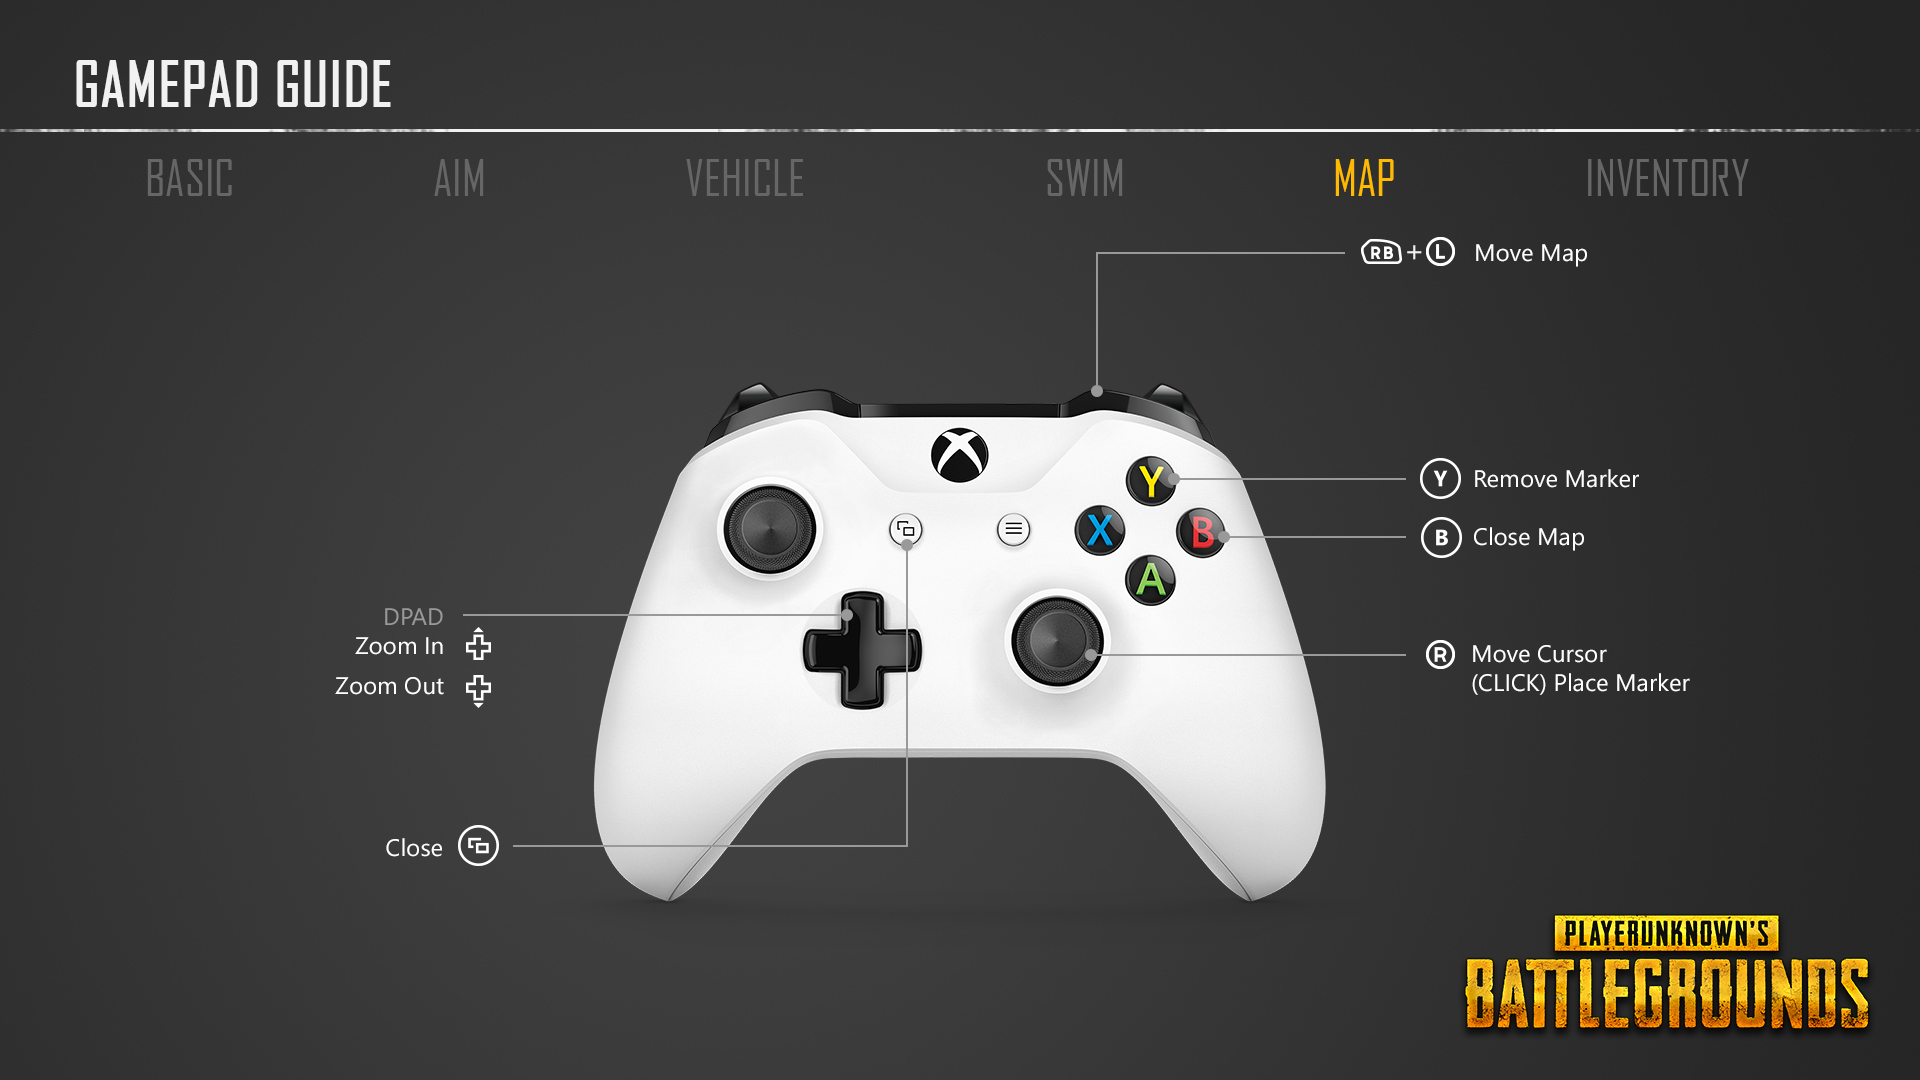 PlayerUnknowns Battlegrounds Controller Layout And